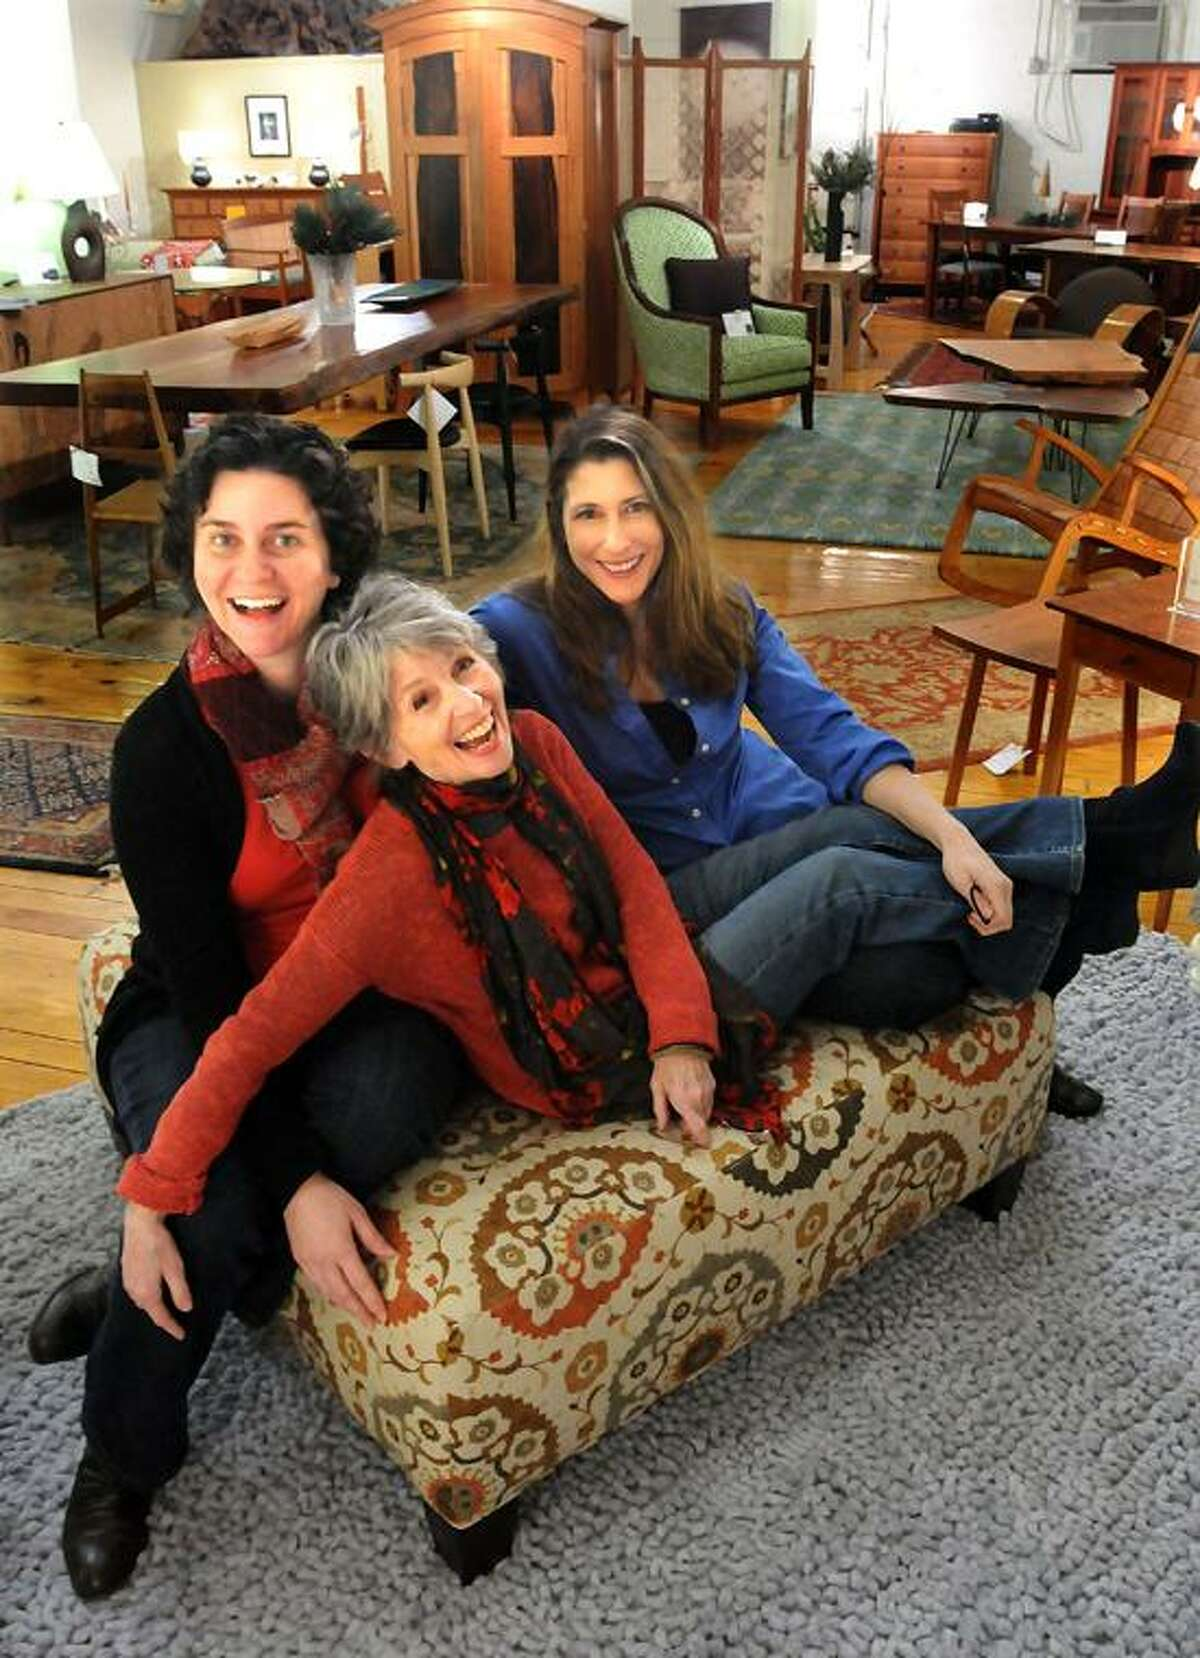 Mara Lavitt/Register: Founding members of Theatre 4, Mariah Sage of New Haven, left, Jane Tamarkin of Woodbridge and Rebecka Jones of Hamden, lounge about at Fairhaven Furniture, the site of their next production.